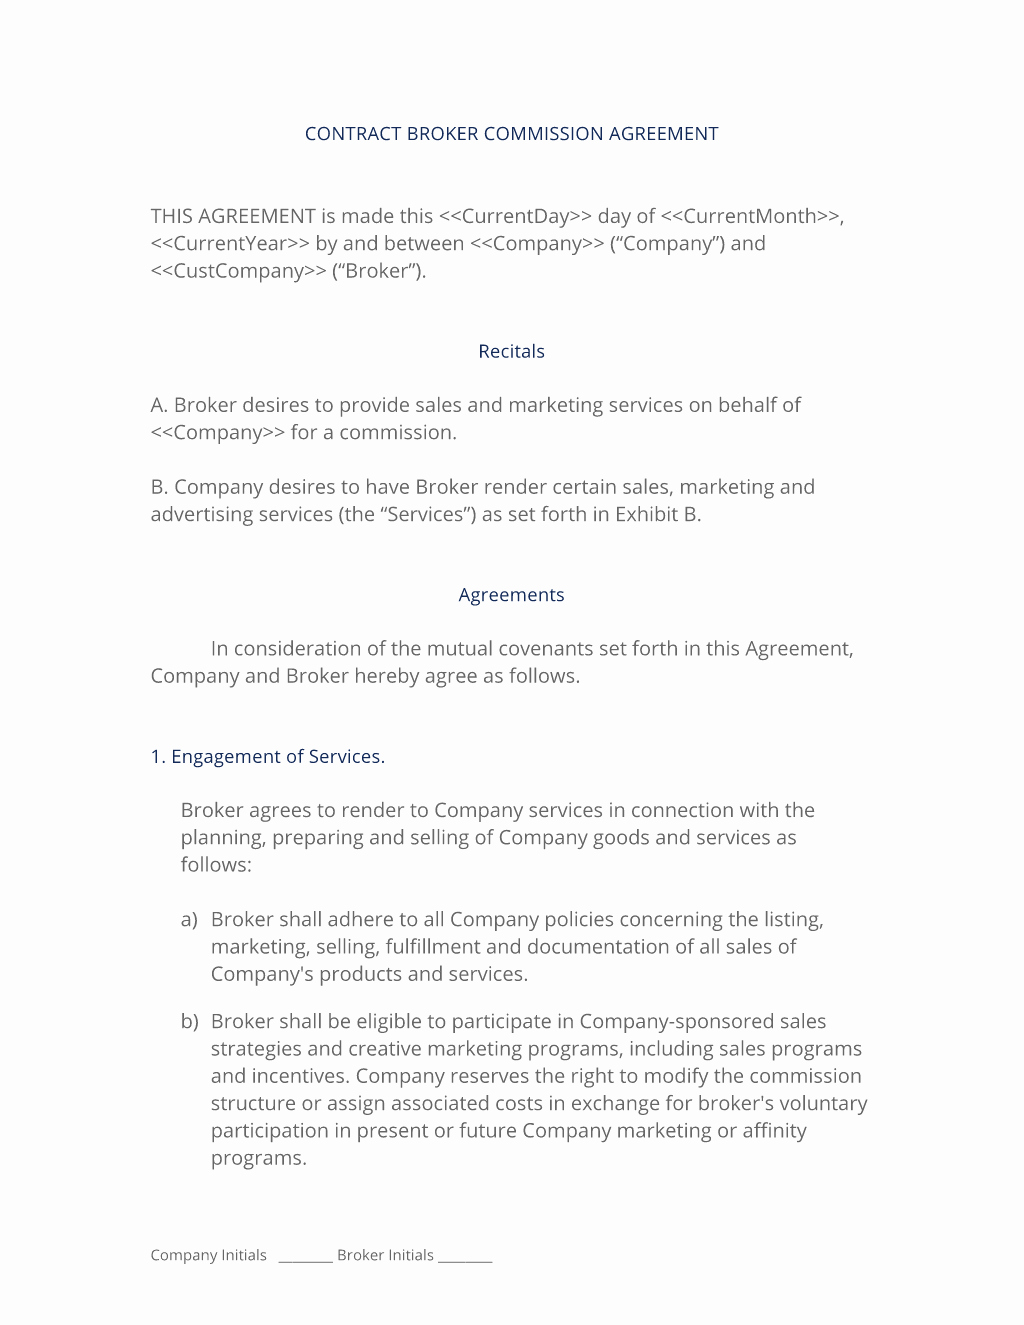 Sales Commission Agreement Template New Broker Mission Sales Agreement 3 Easy Steps